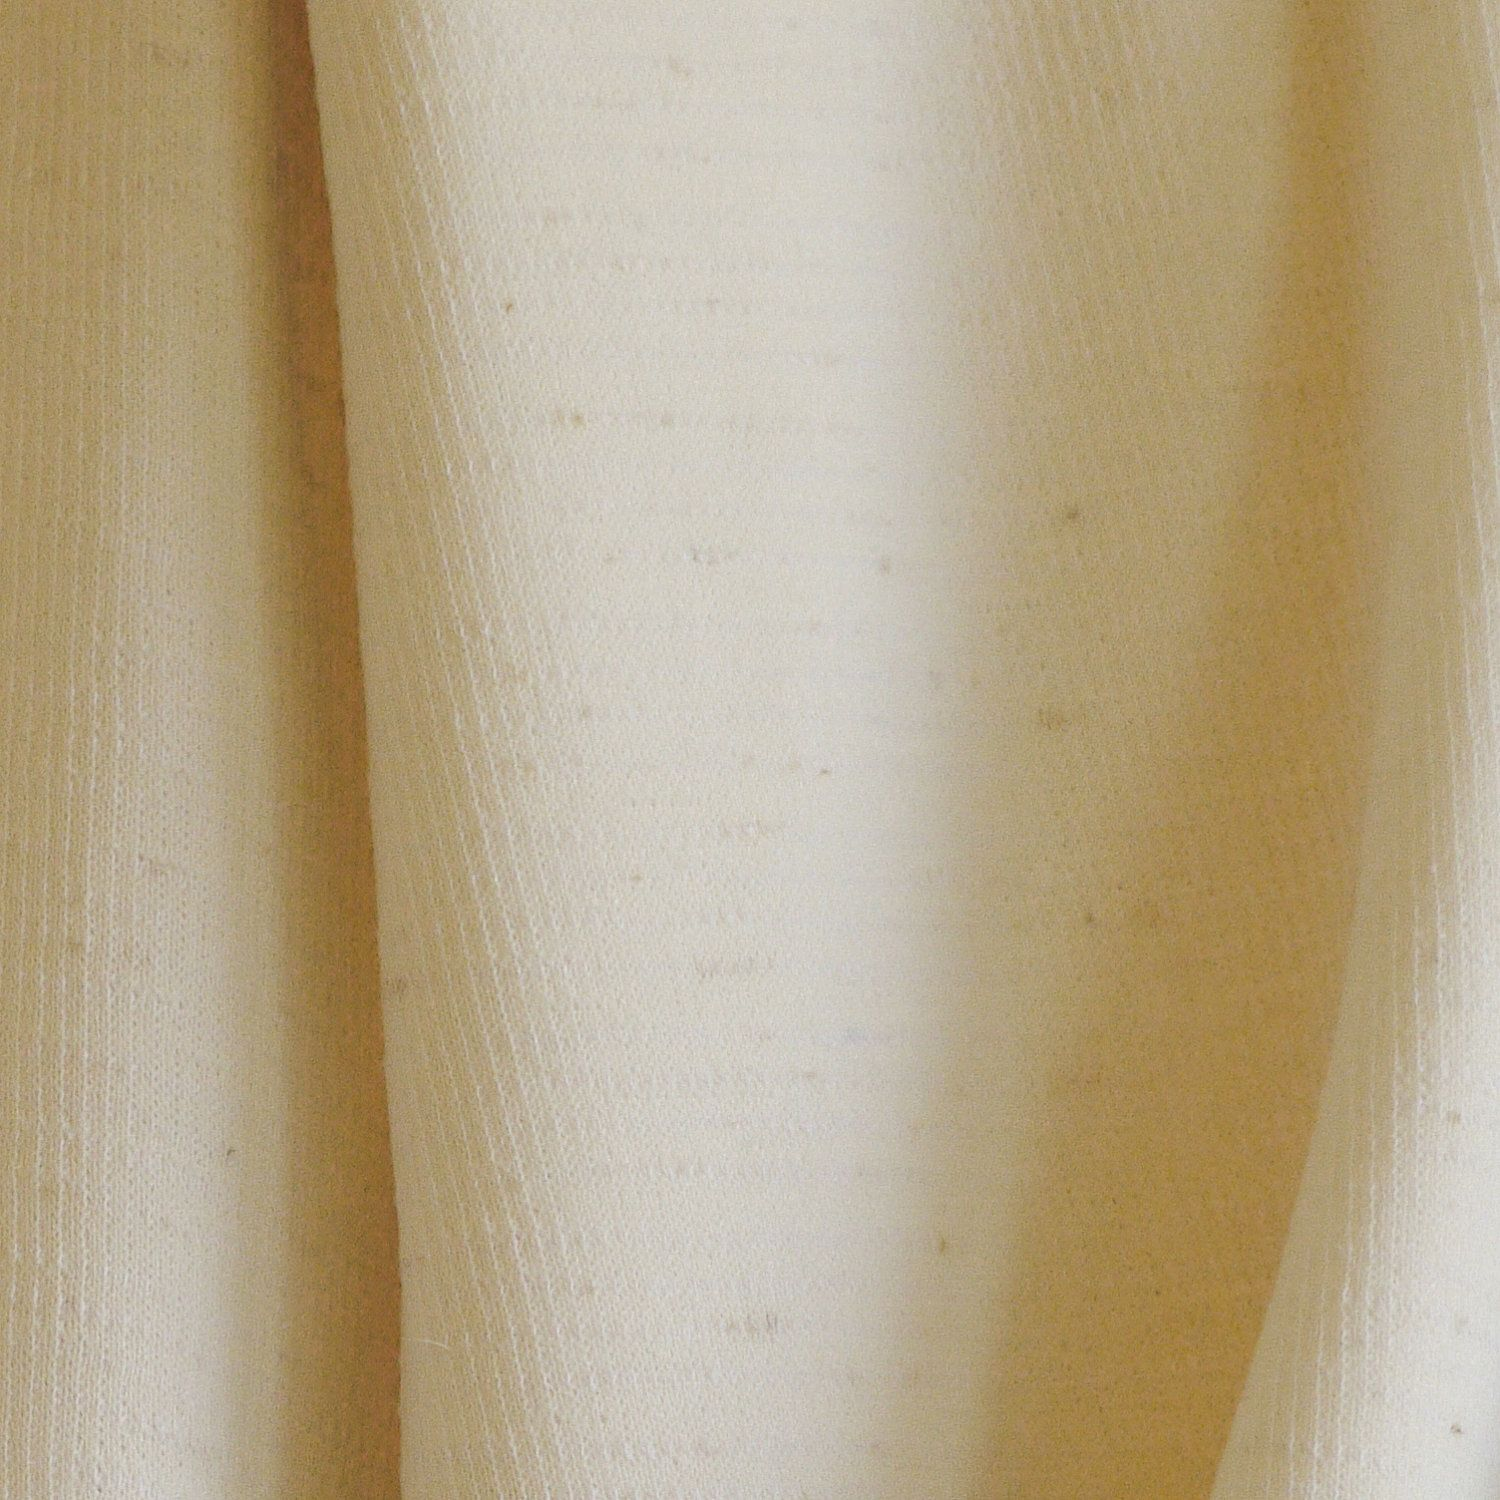 vintage linen texture | FABRIC20 Vintage POLYESTER Single KNIT Oatmeal Cream Linen Texture 62 ...